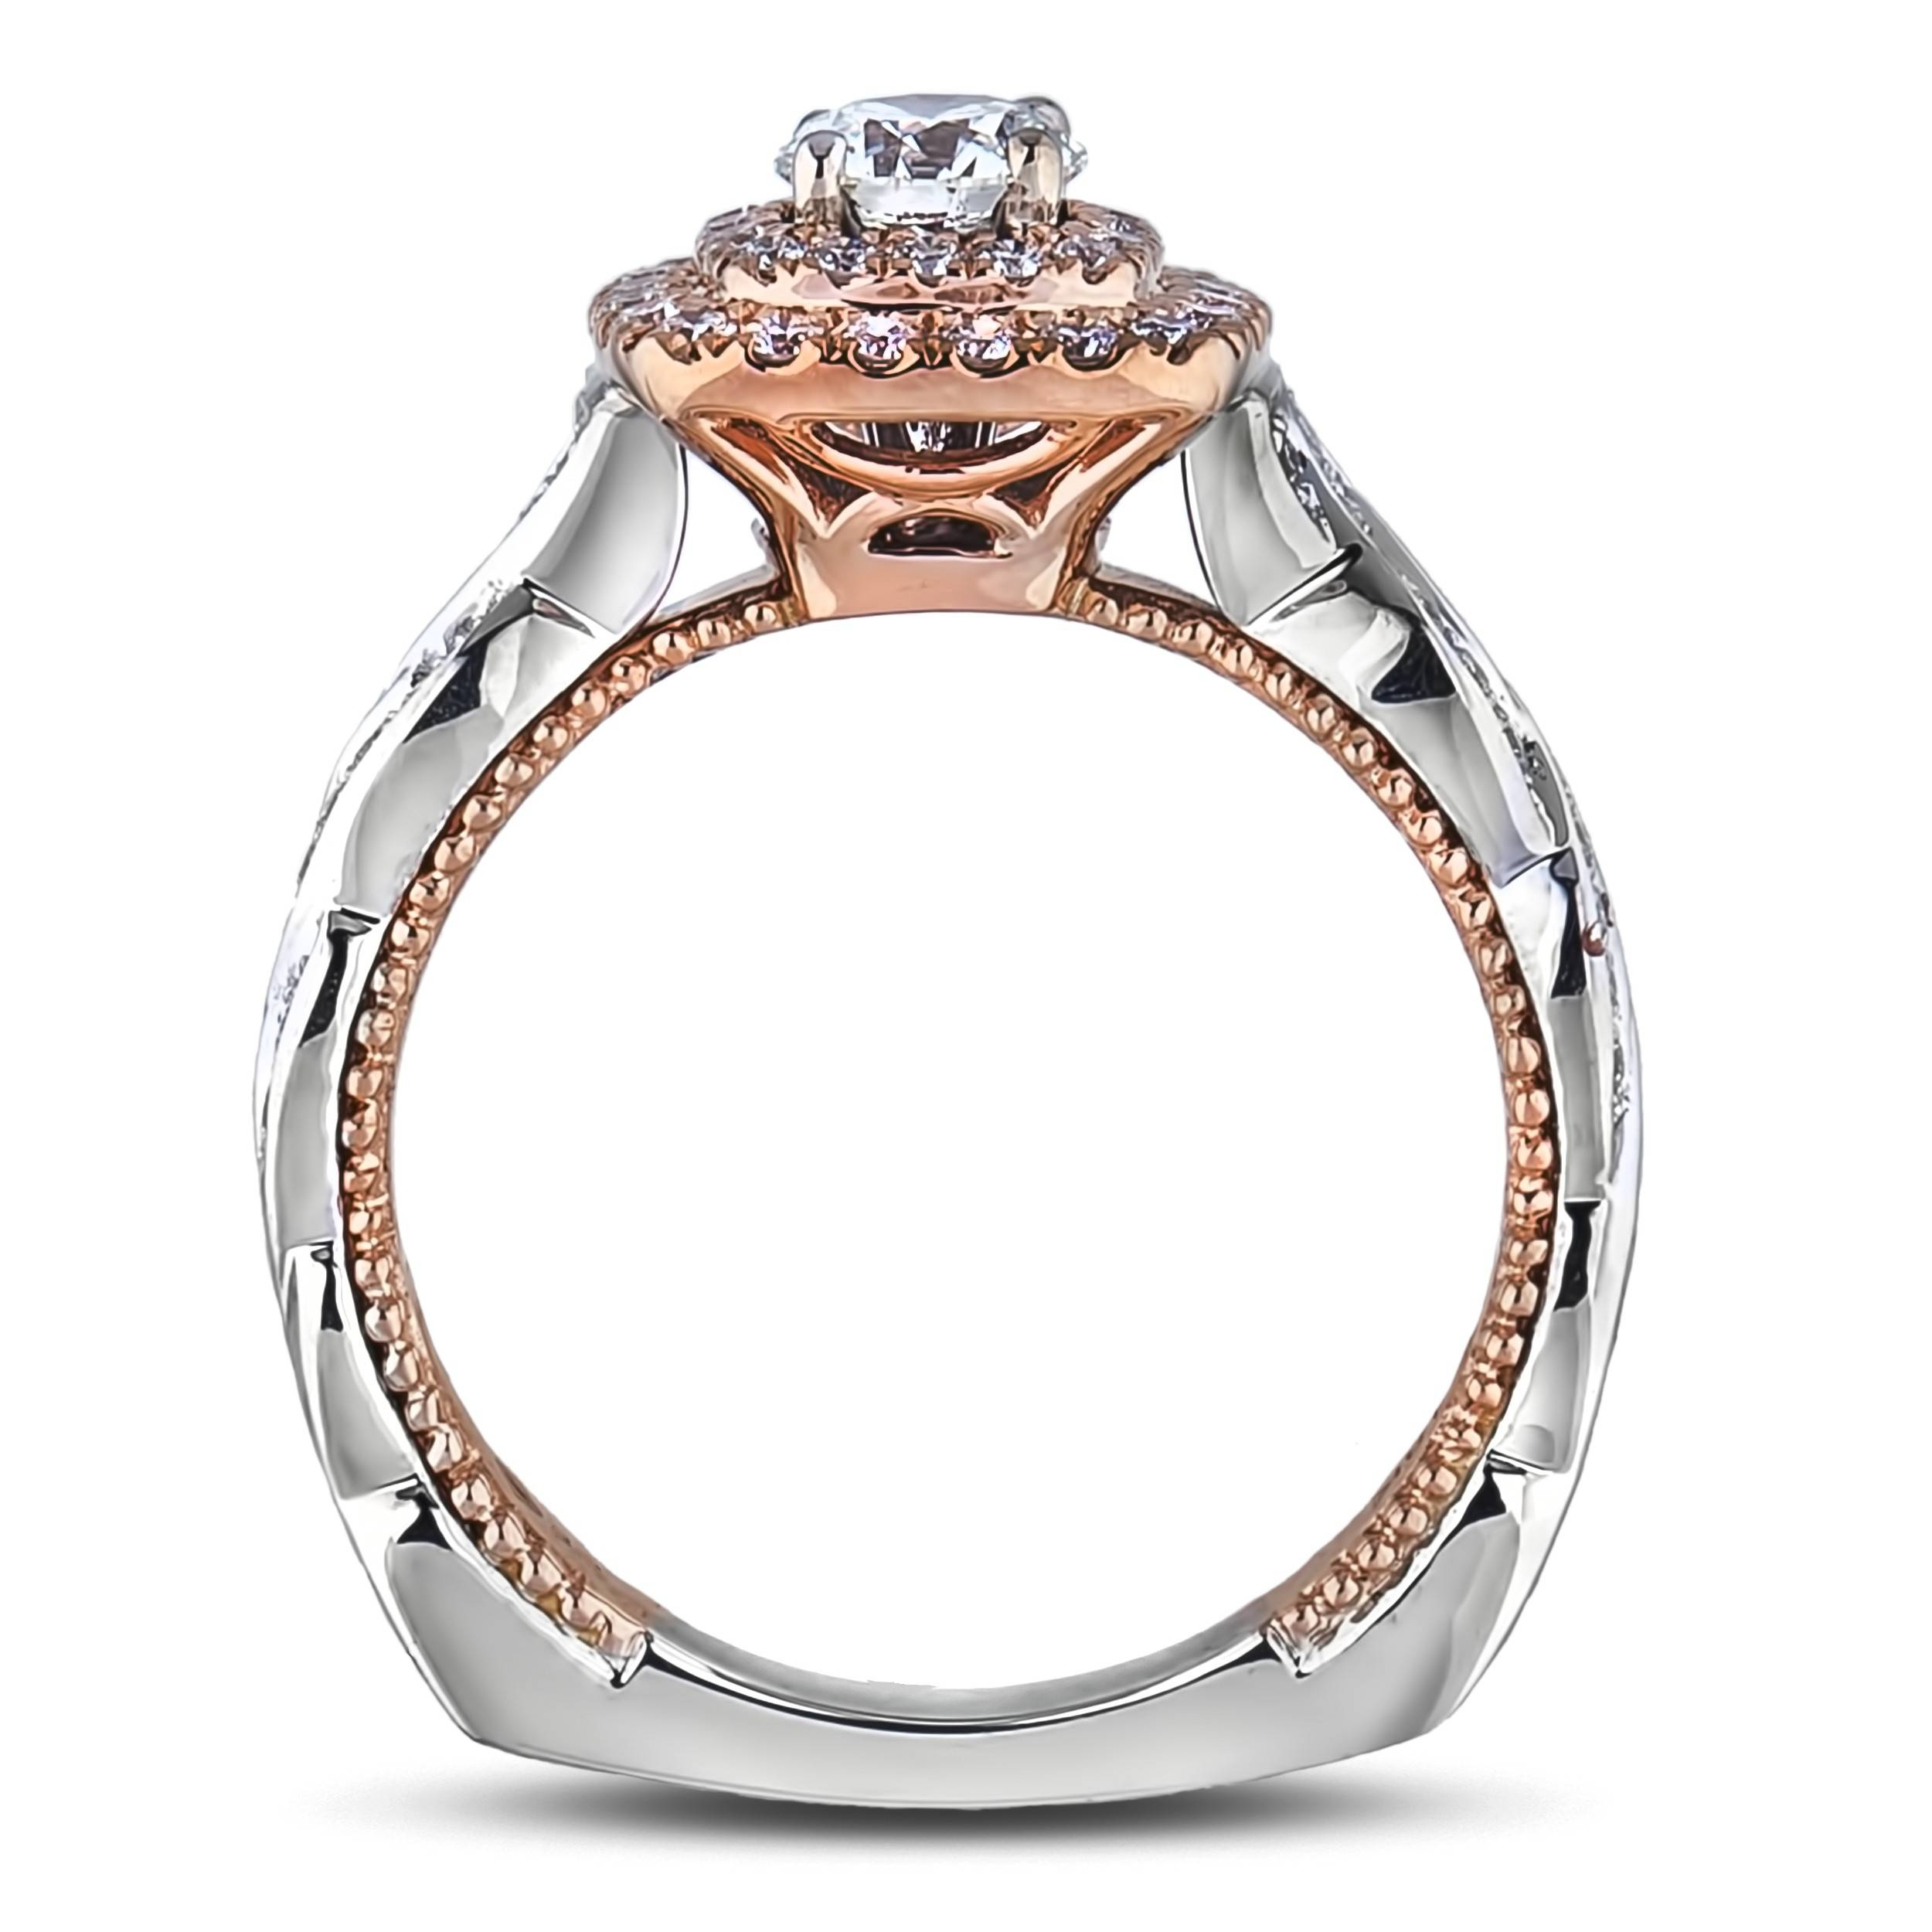 Lugaro | Engagement Ring With Regard To Certified Diamond Wedding Rings (View 6 of 15)